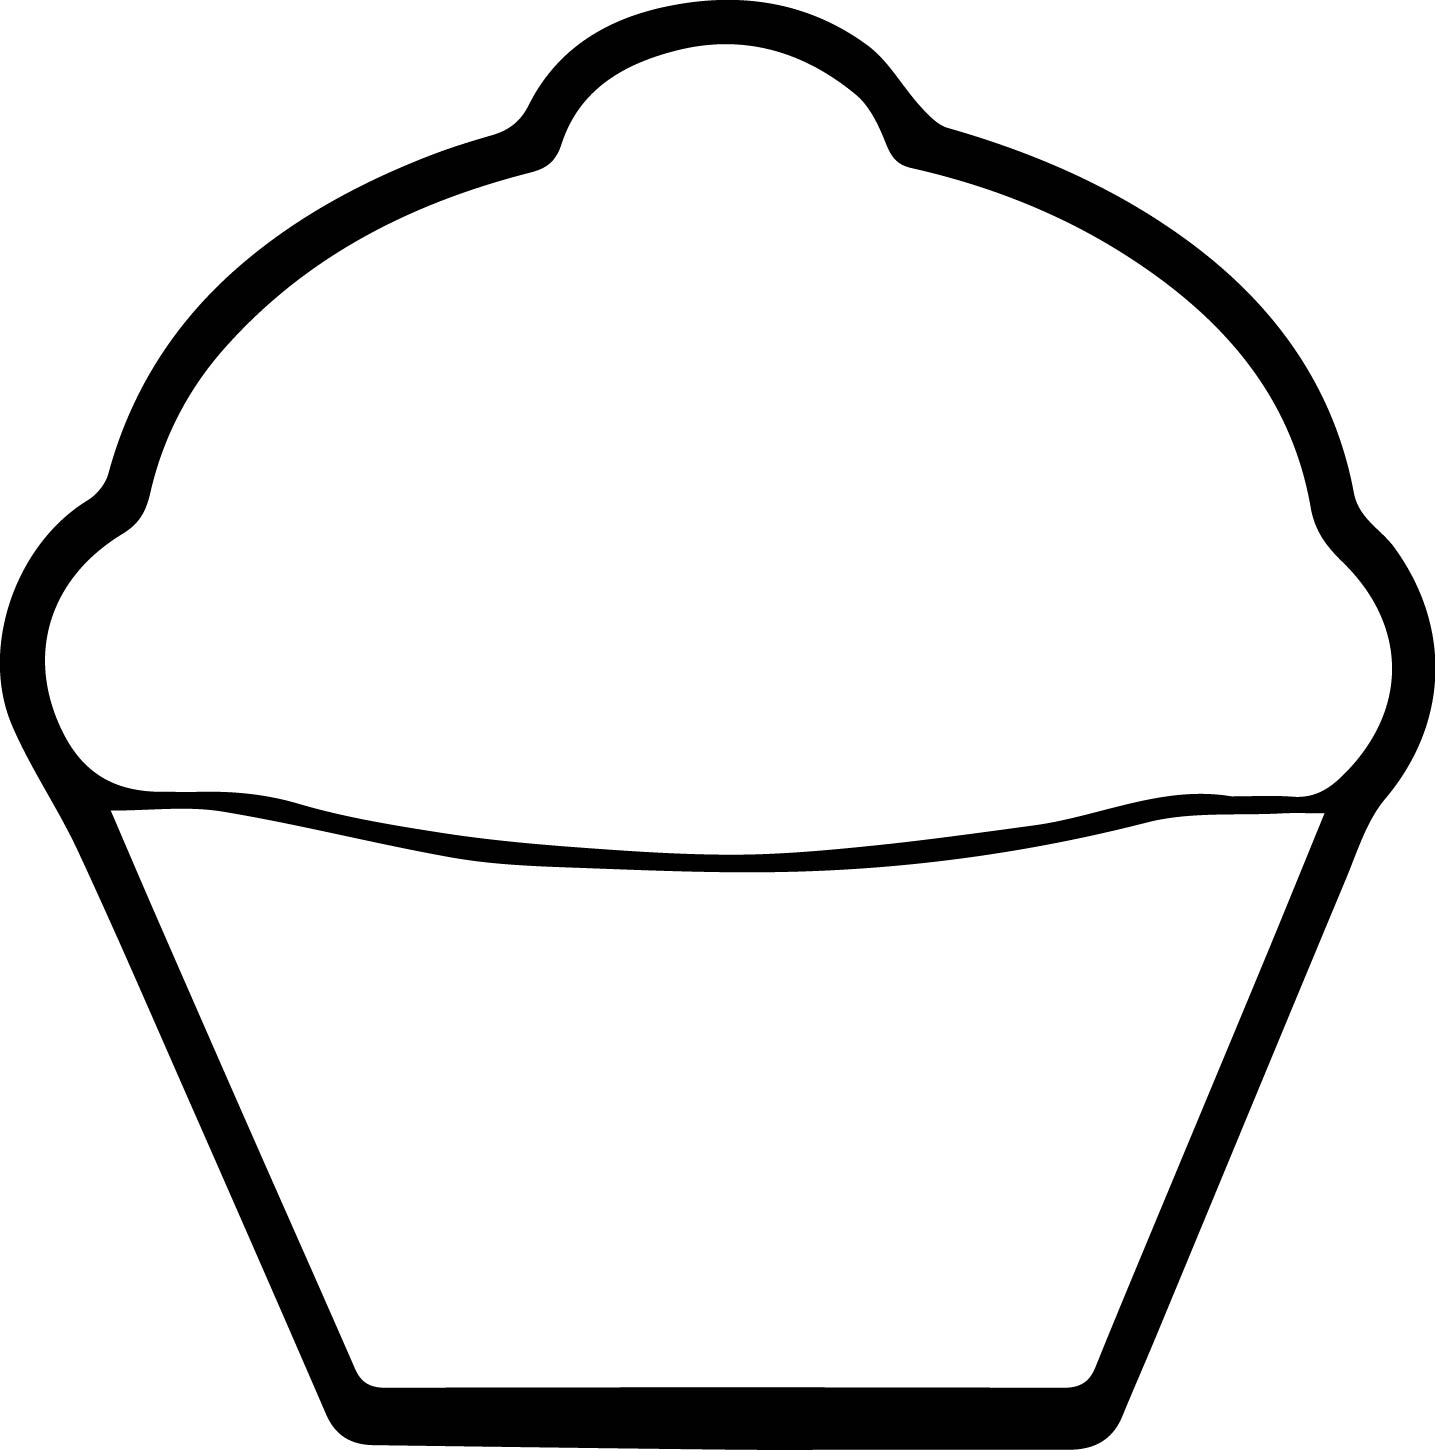 White Cupcake Coloring Page | Wecoloringpage